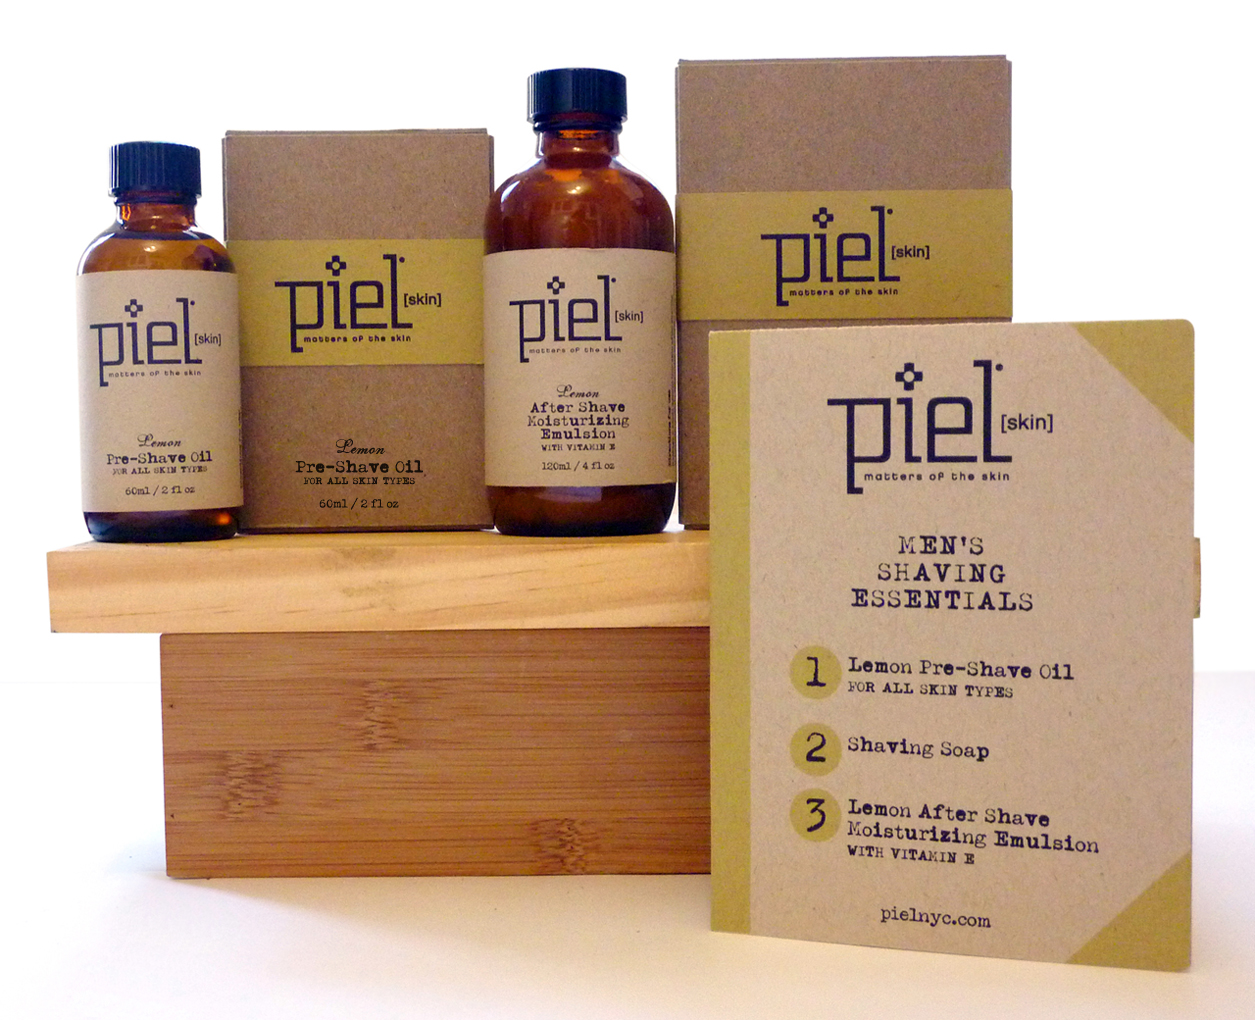 PIEL MEN'S SHAVING ESSENTIALS